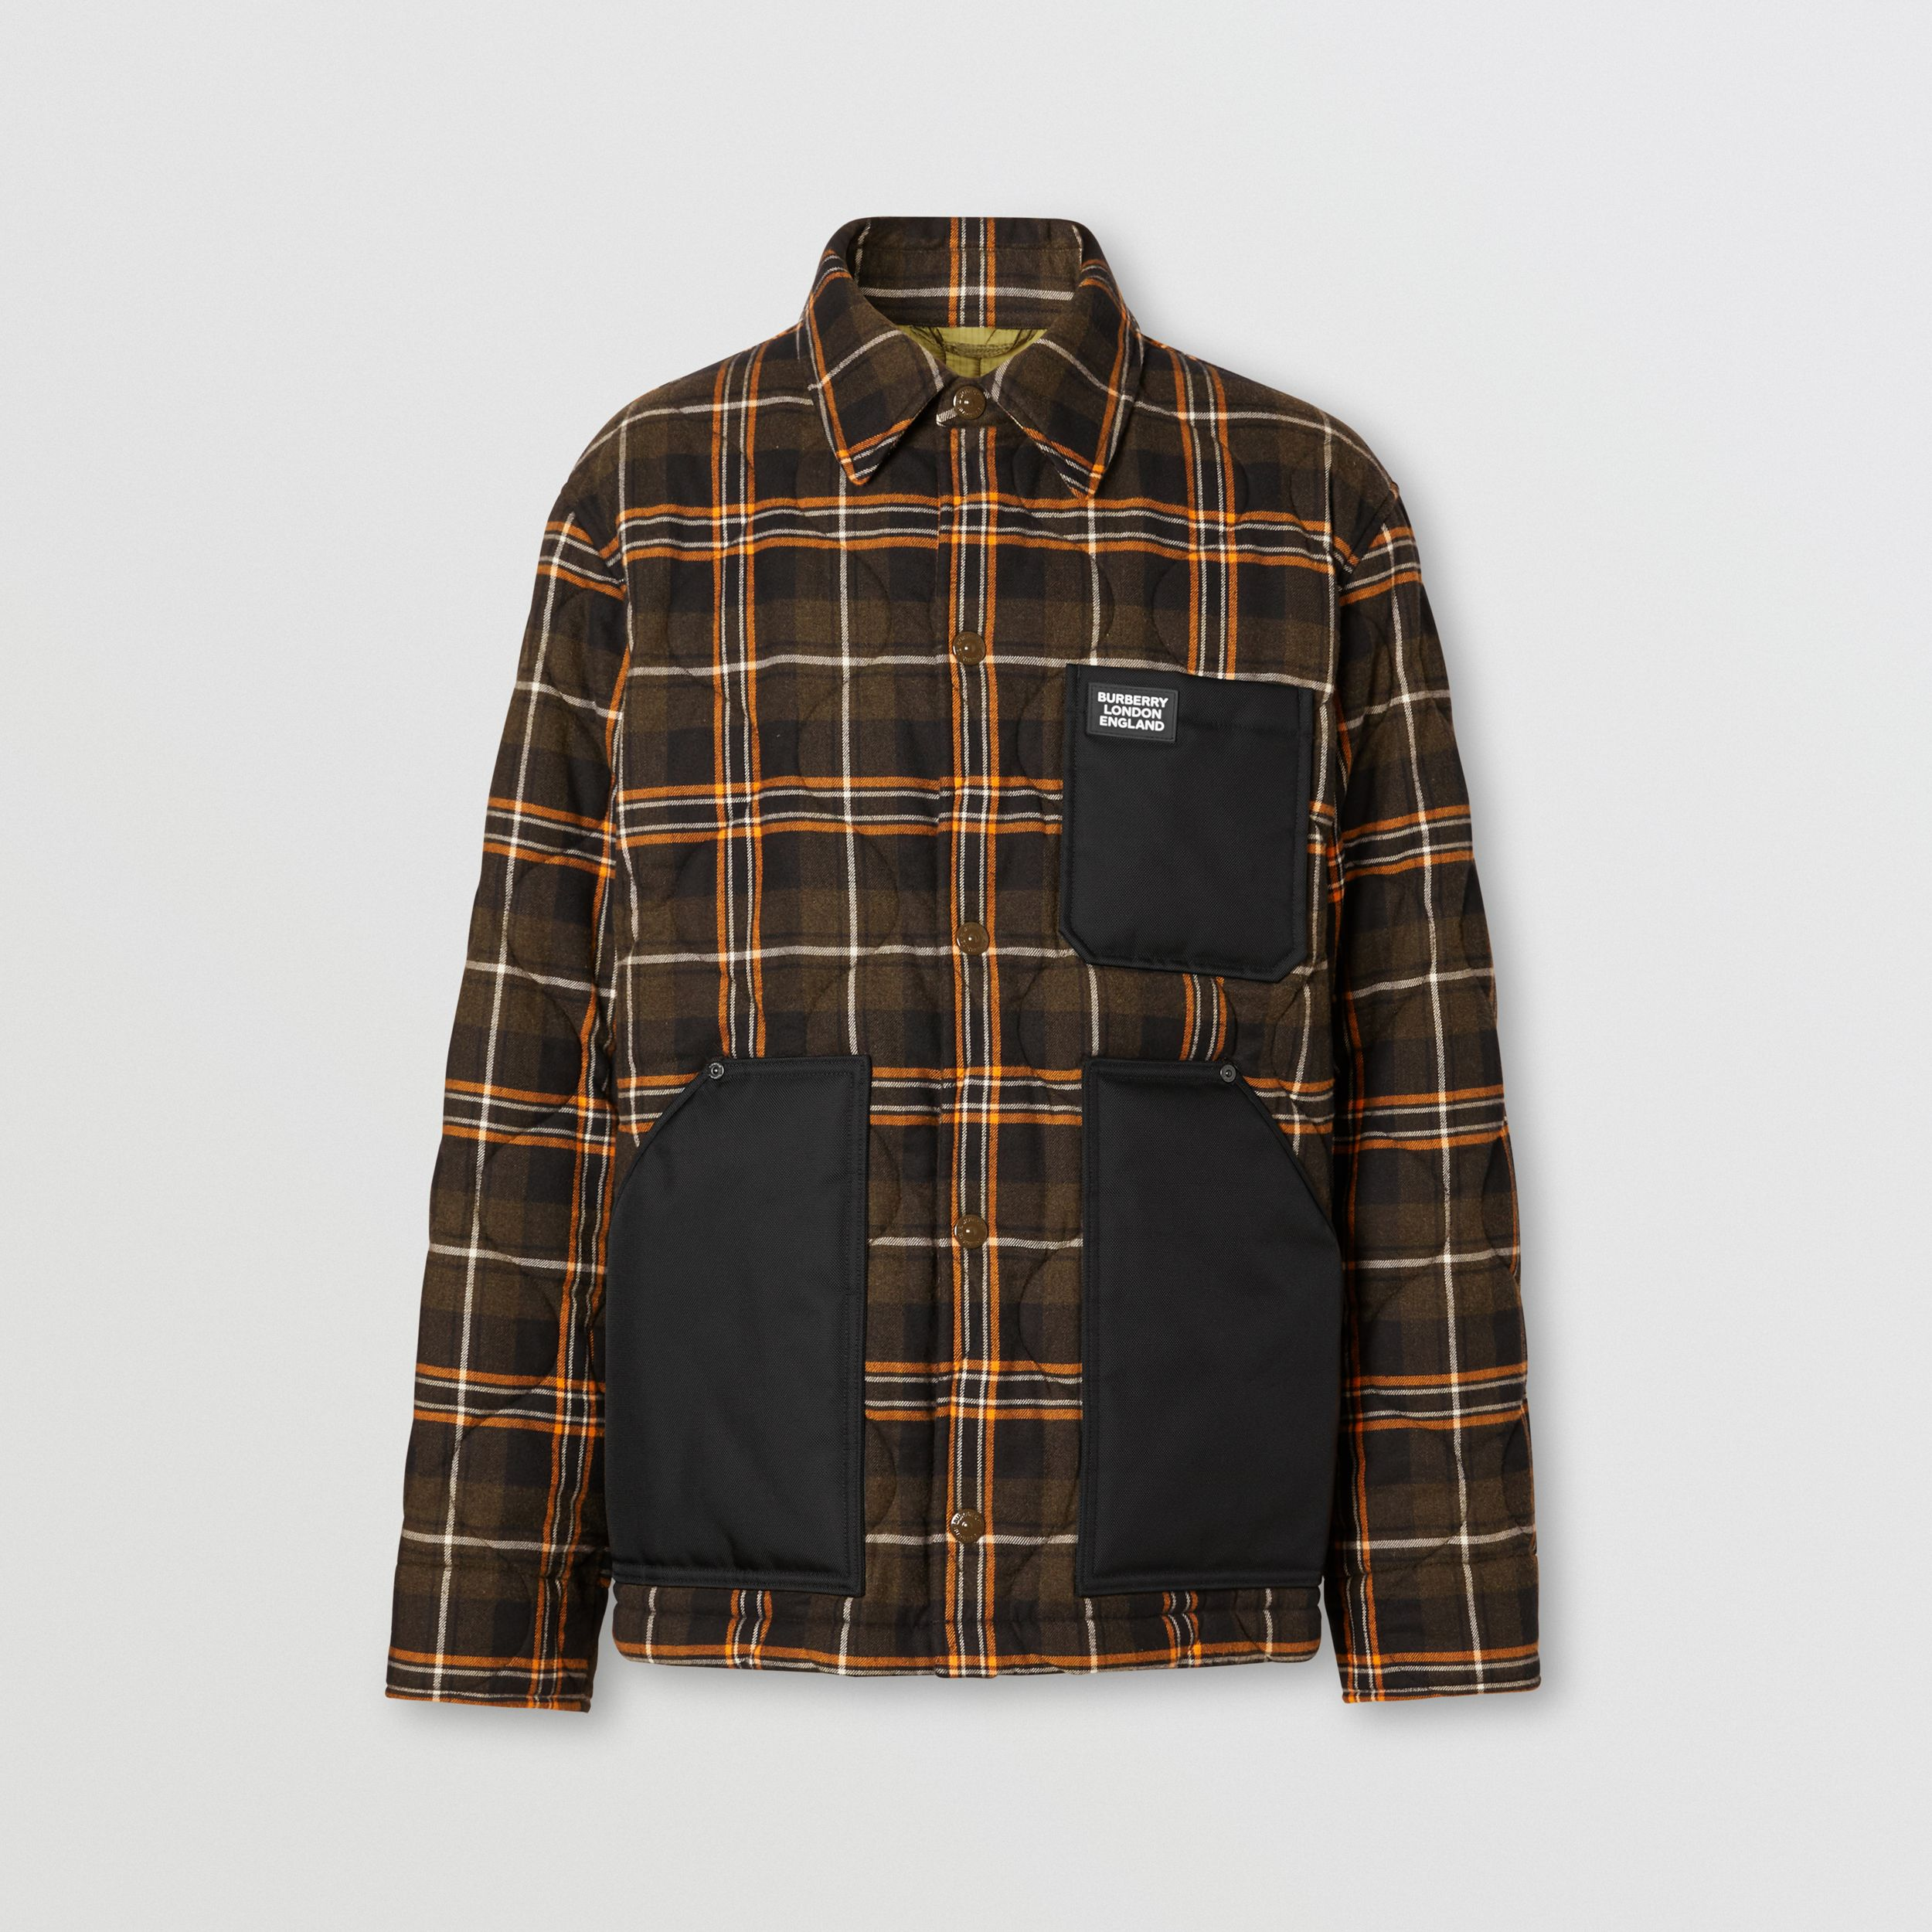 Contrast Pocket Check Cotton Flannel Overshirt in Olive - Men | Burberry - 4